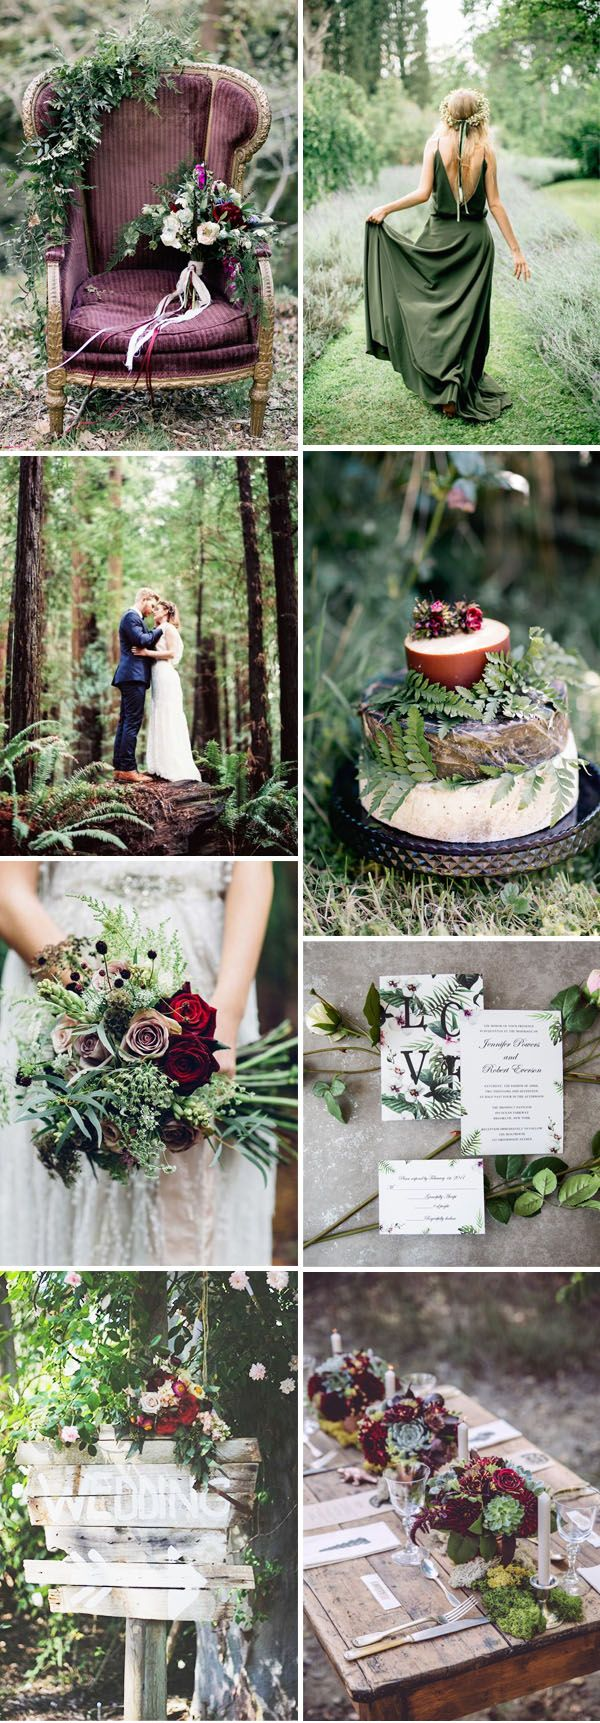 40 Inspiring Ideas to Have a Dreamy Woodland Wedding